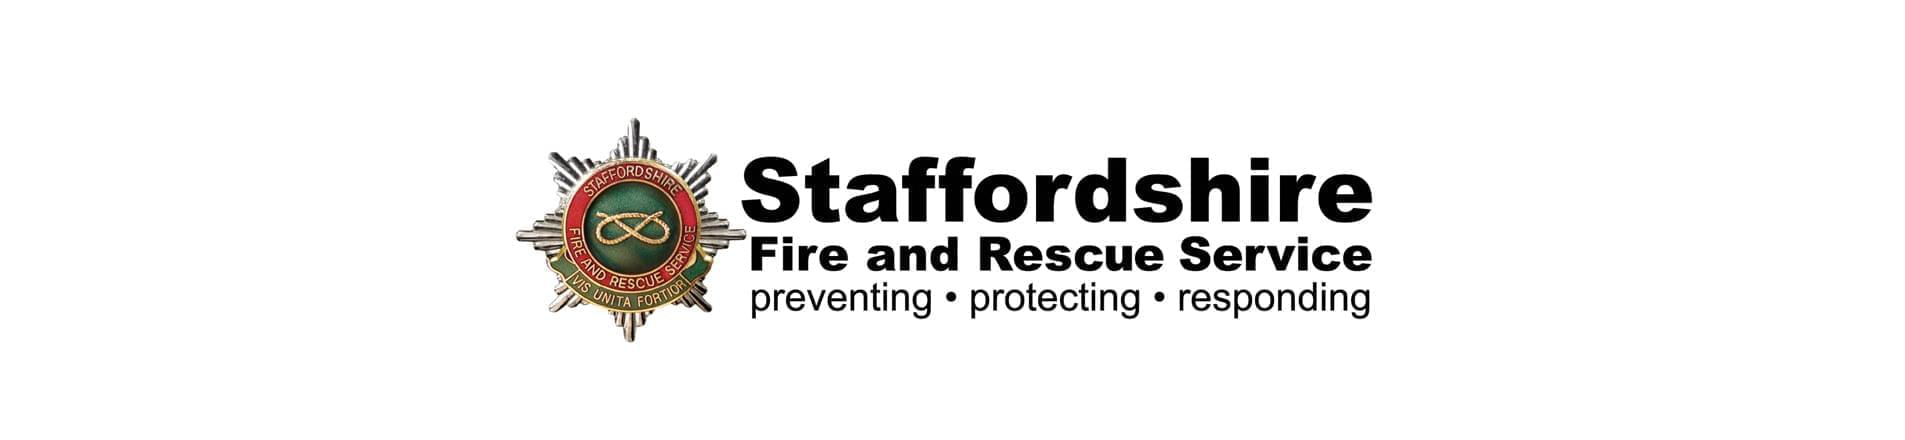 Staffordshire Fire and Rescue Services Logo